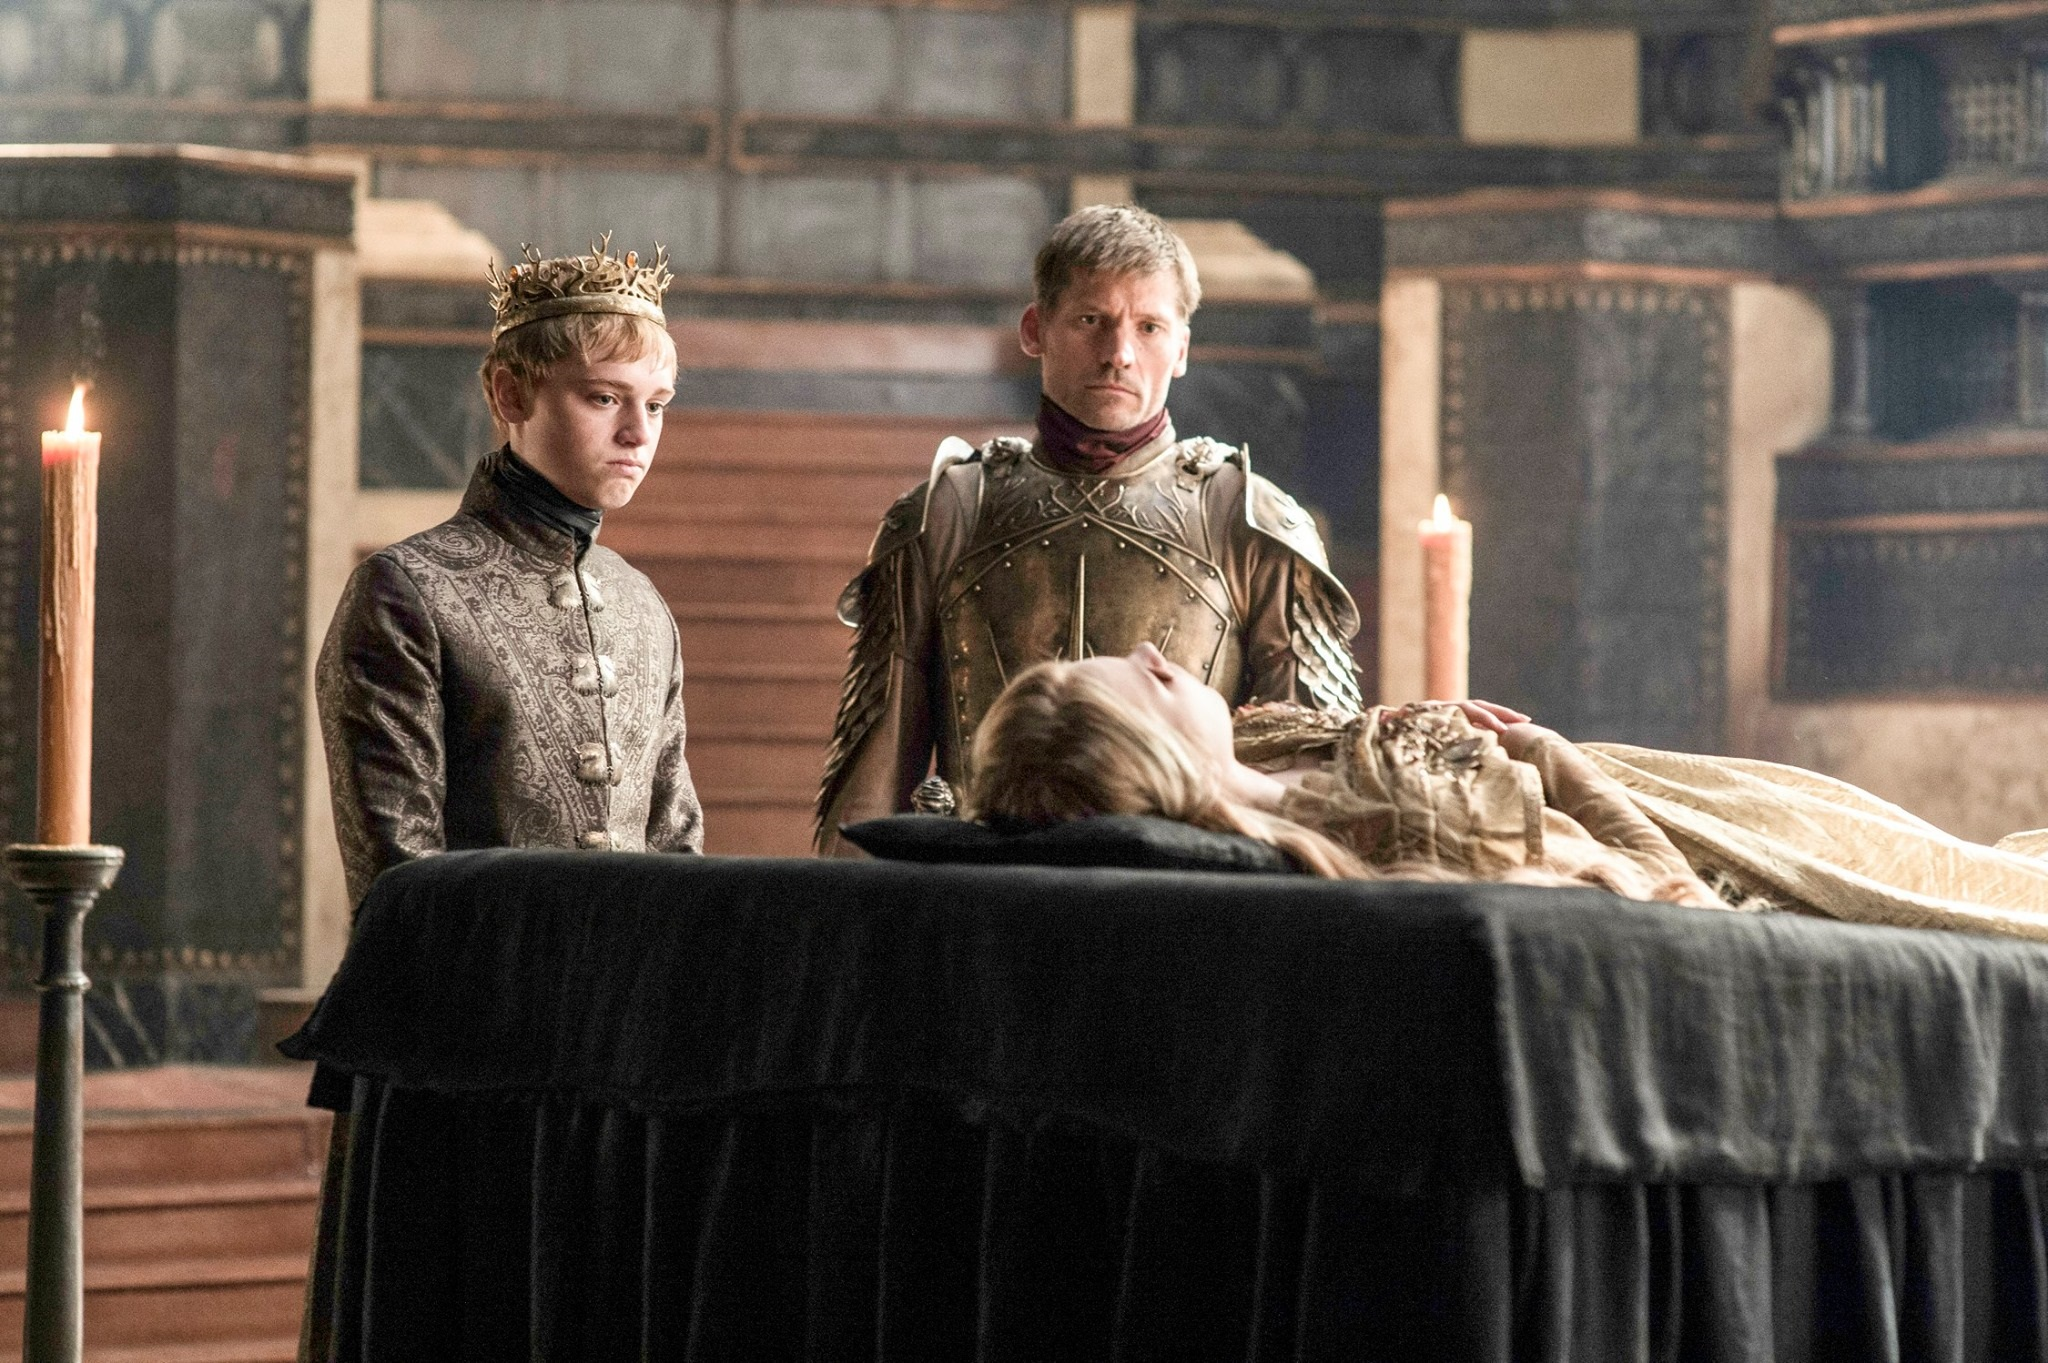 'Game of Thrones' Officially Renewed for Season 7